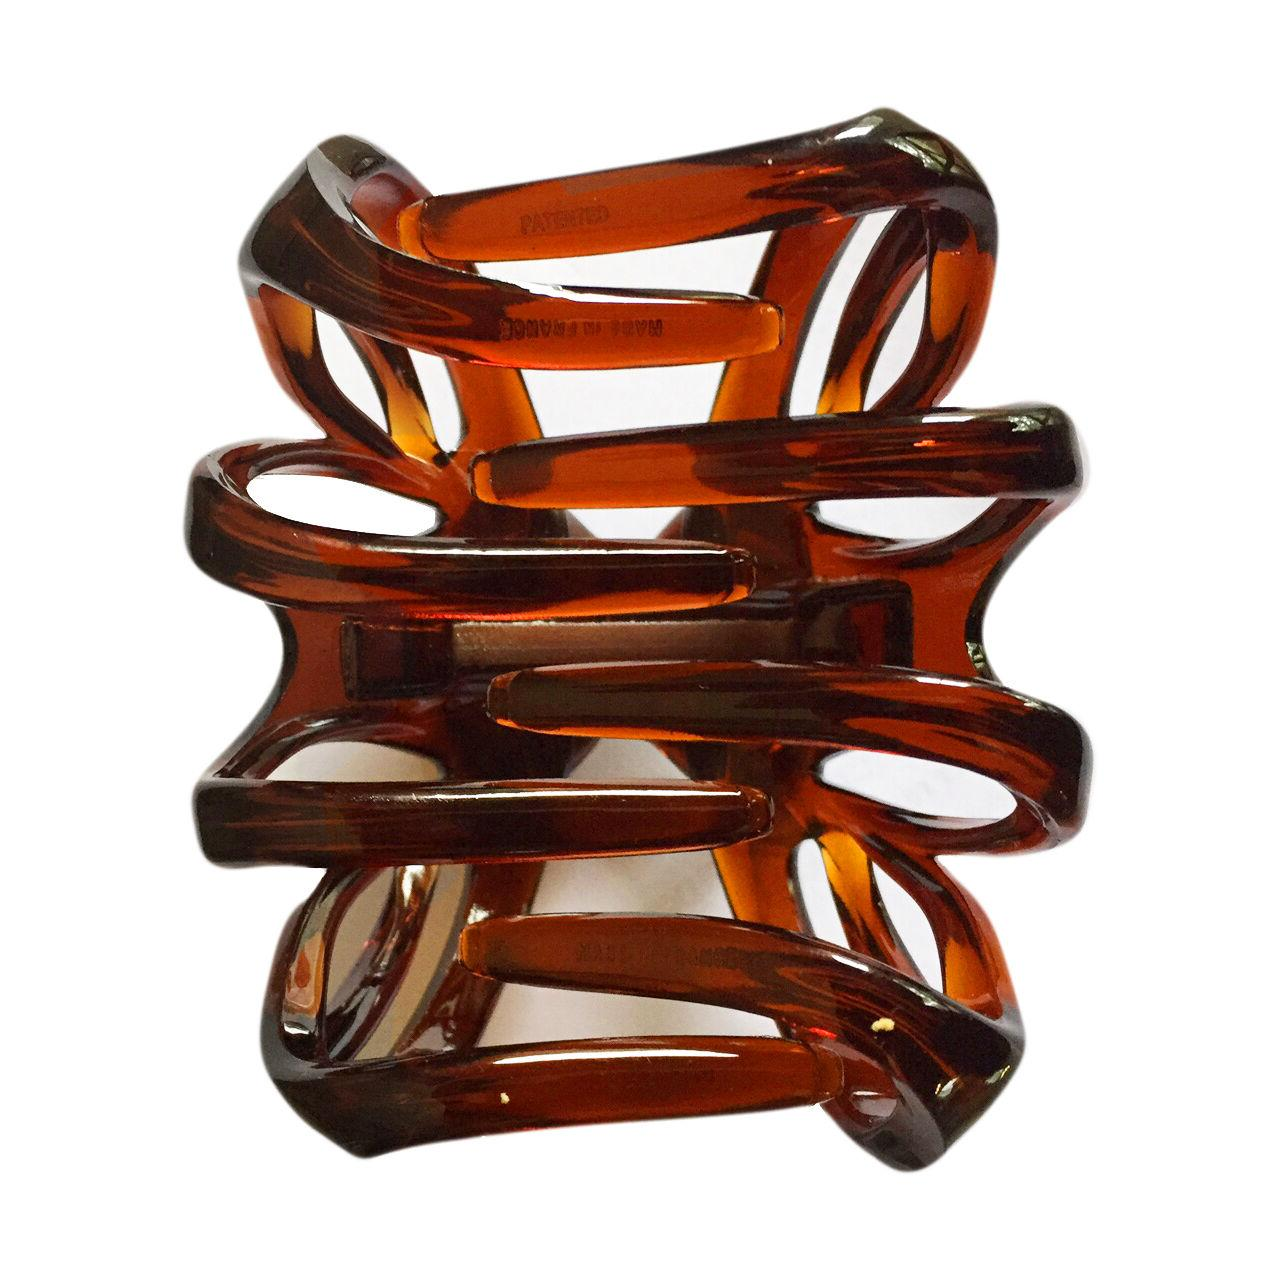 French Clip Celluloid Tortoise Shell Jaw Hair Clip 1/2 Inch -T03